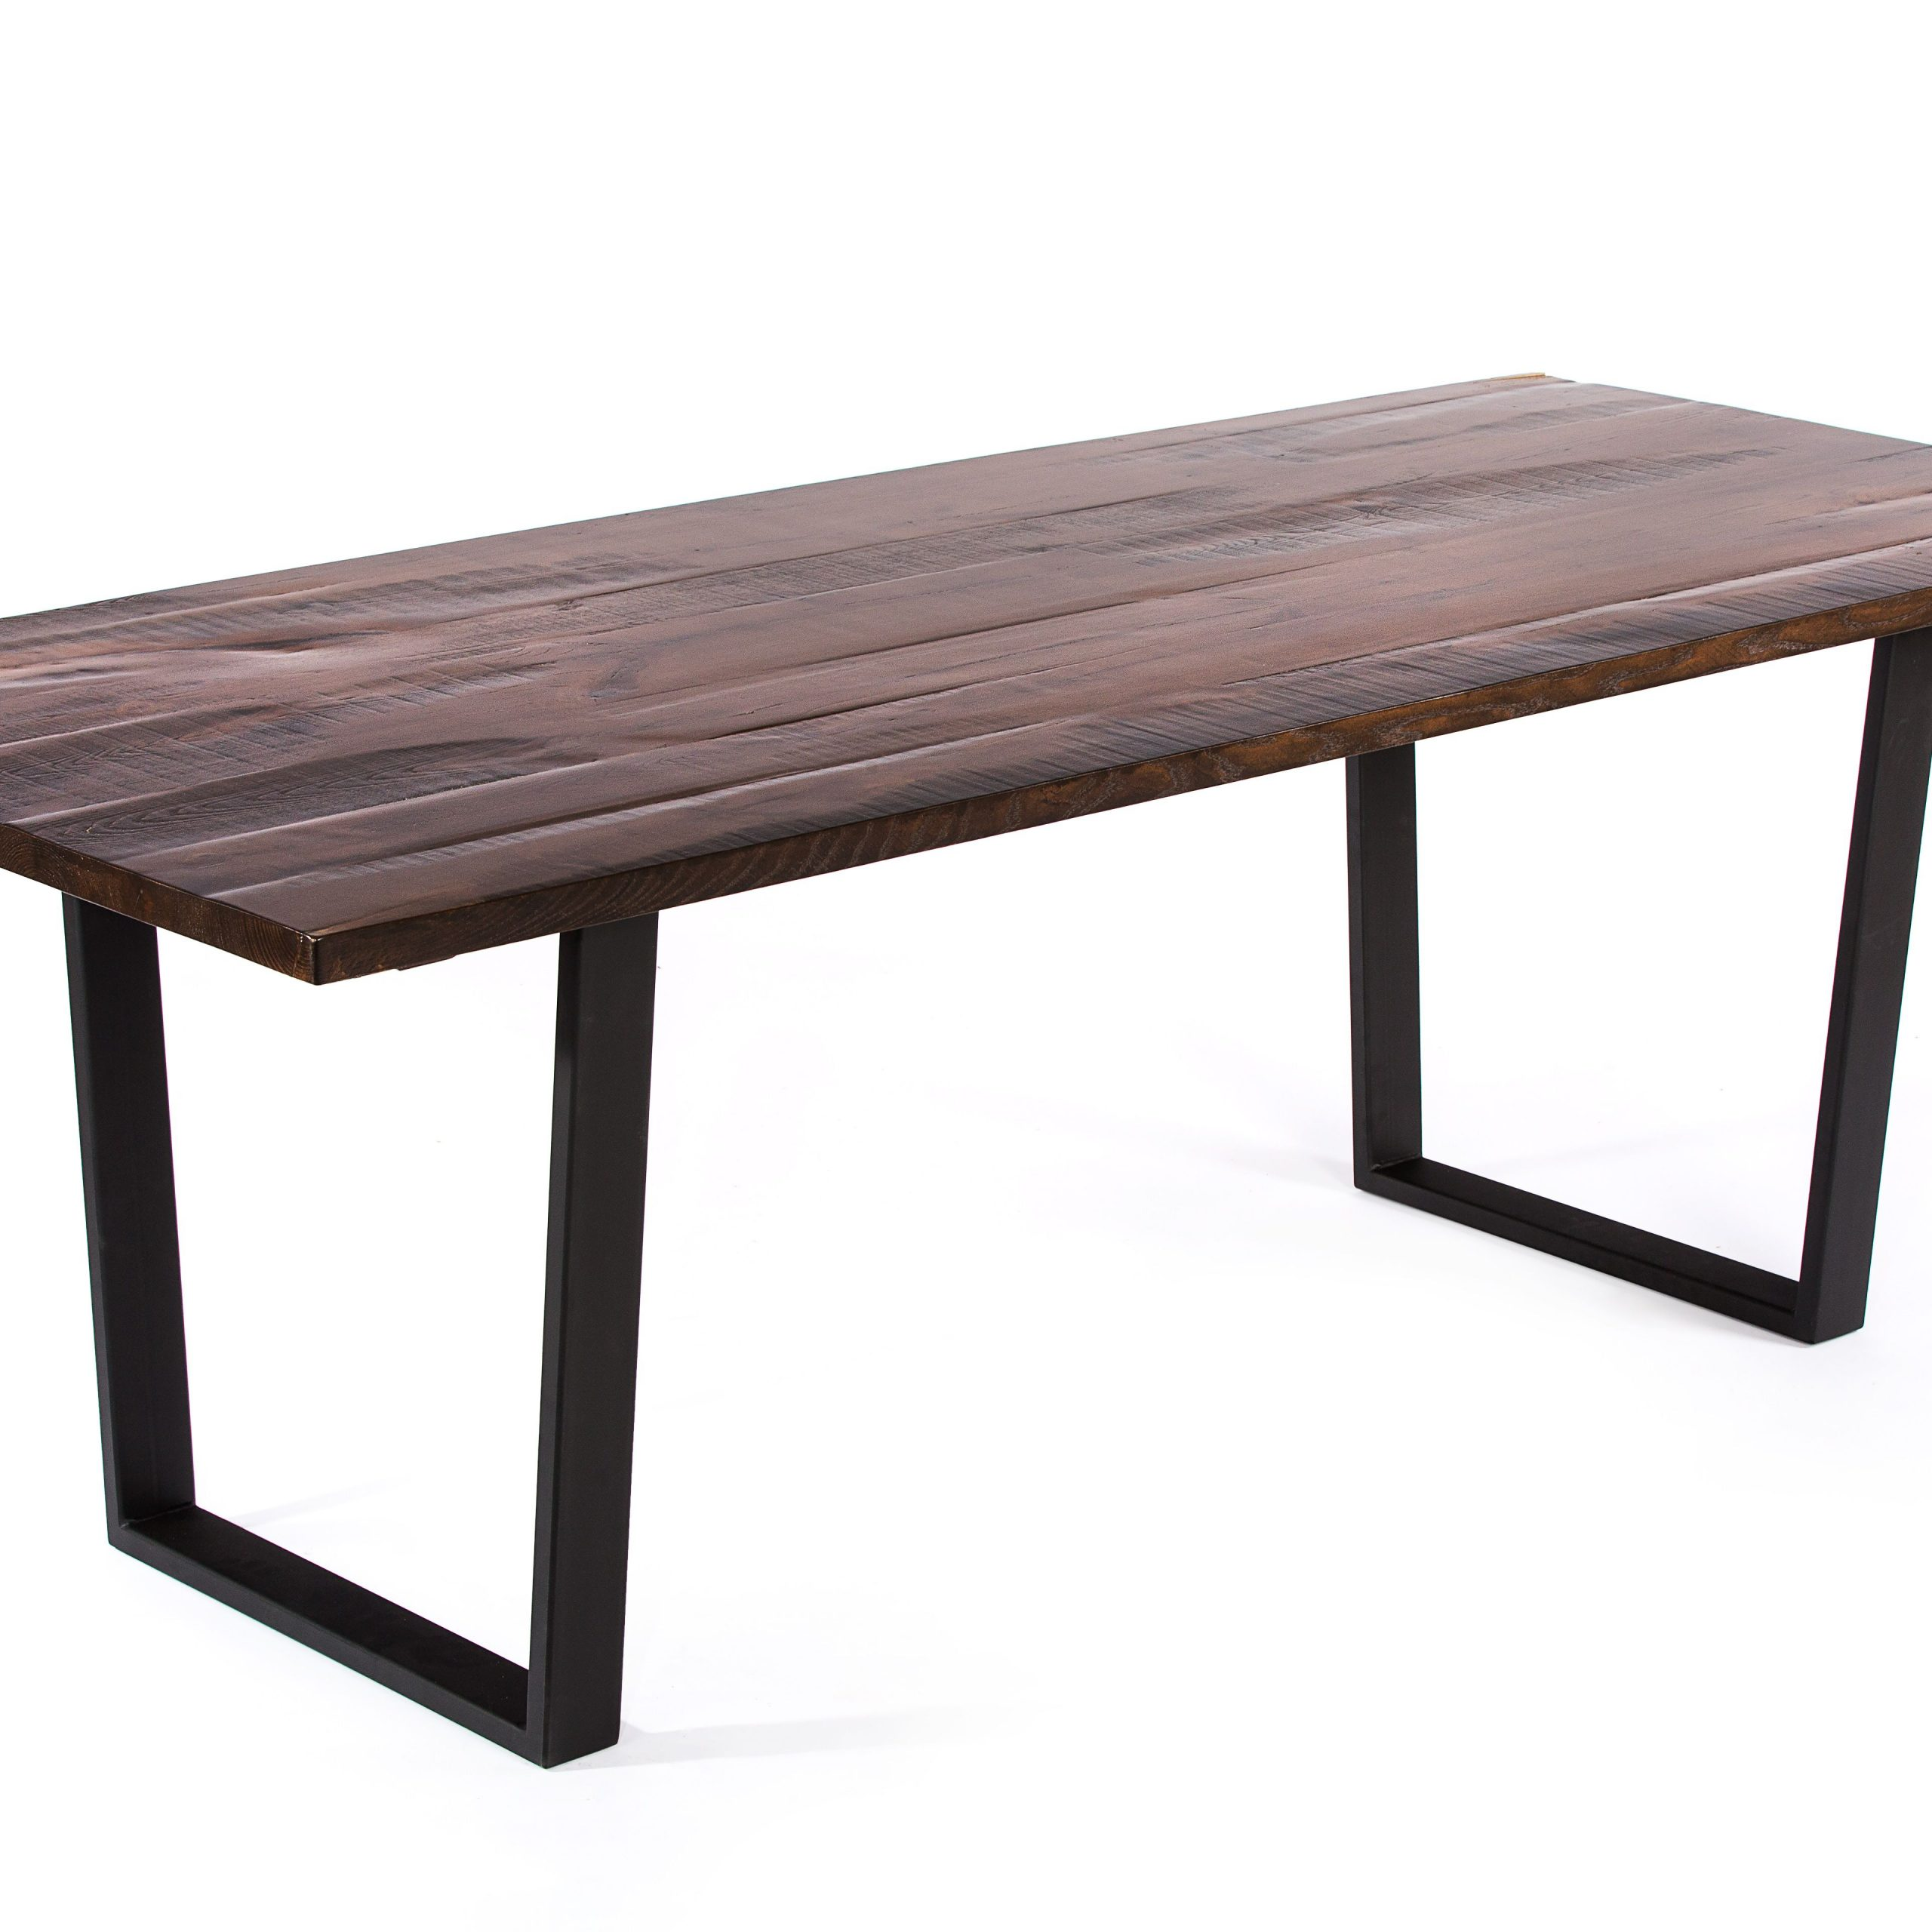 Dining Tables With Stained Ash Walnut With Regard To 2017 Buy A Handmade The Trenton Reclaimed Wood Dining Table (View 13 of 30)